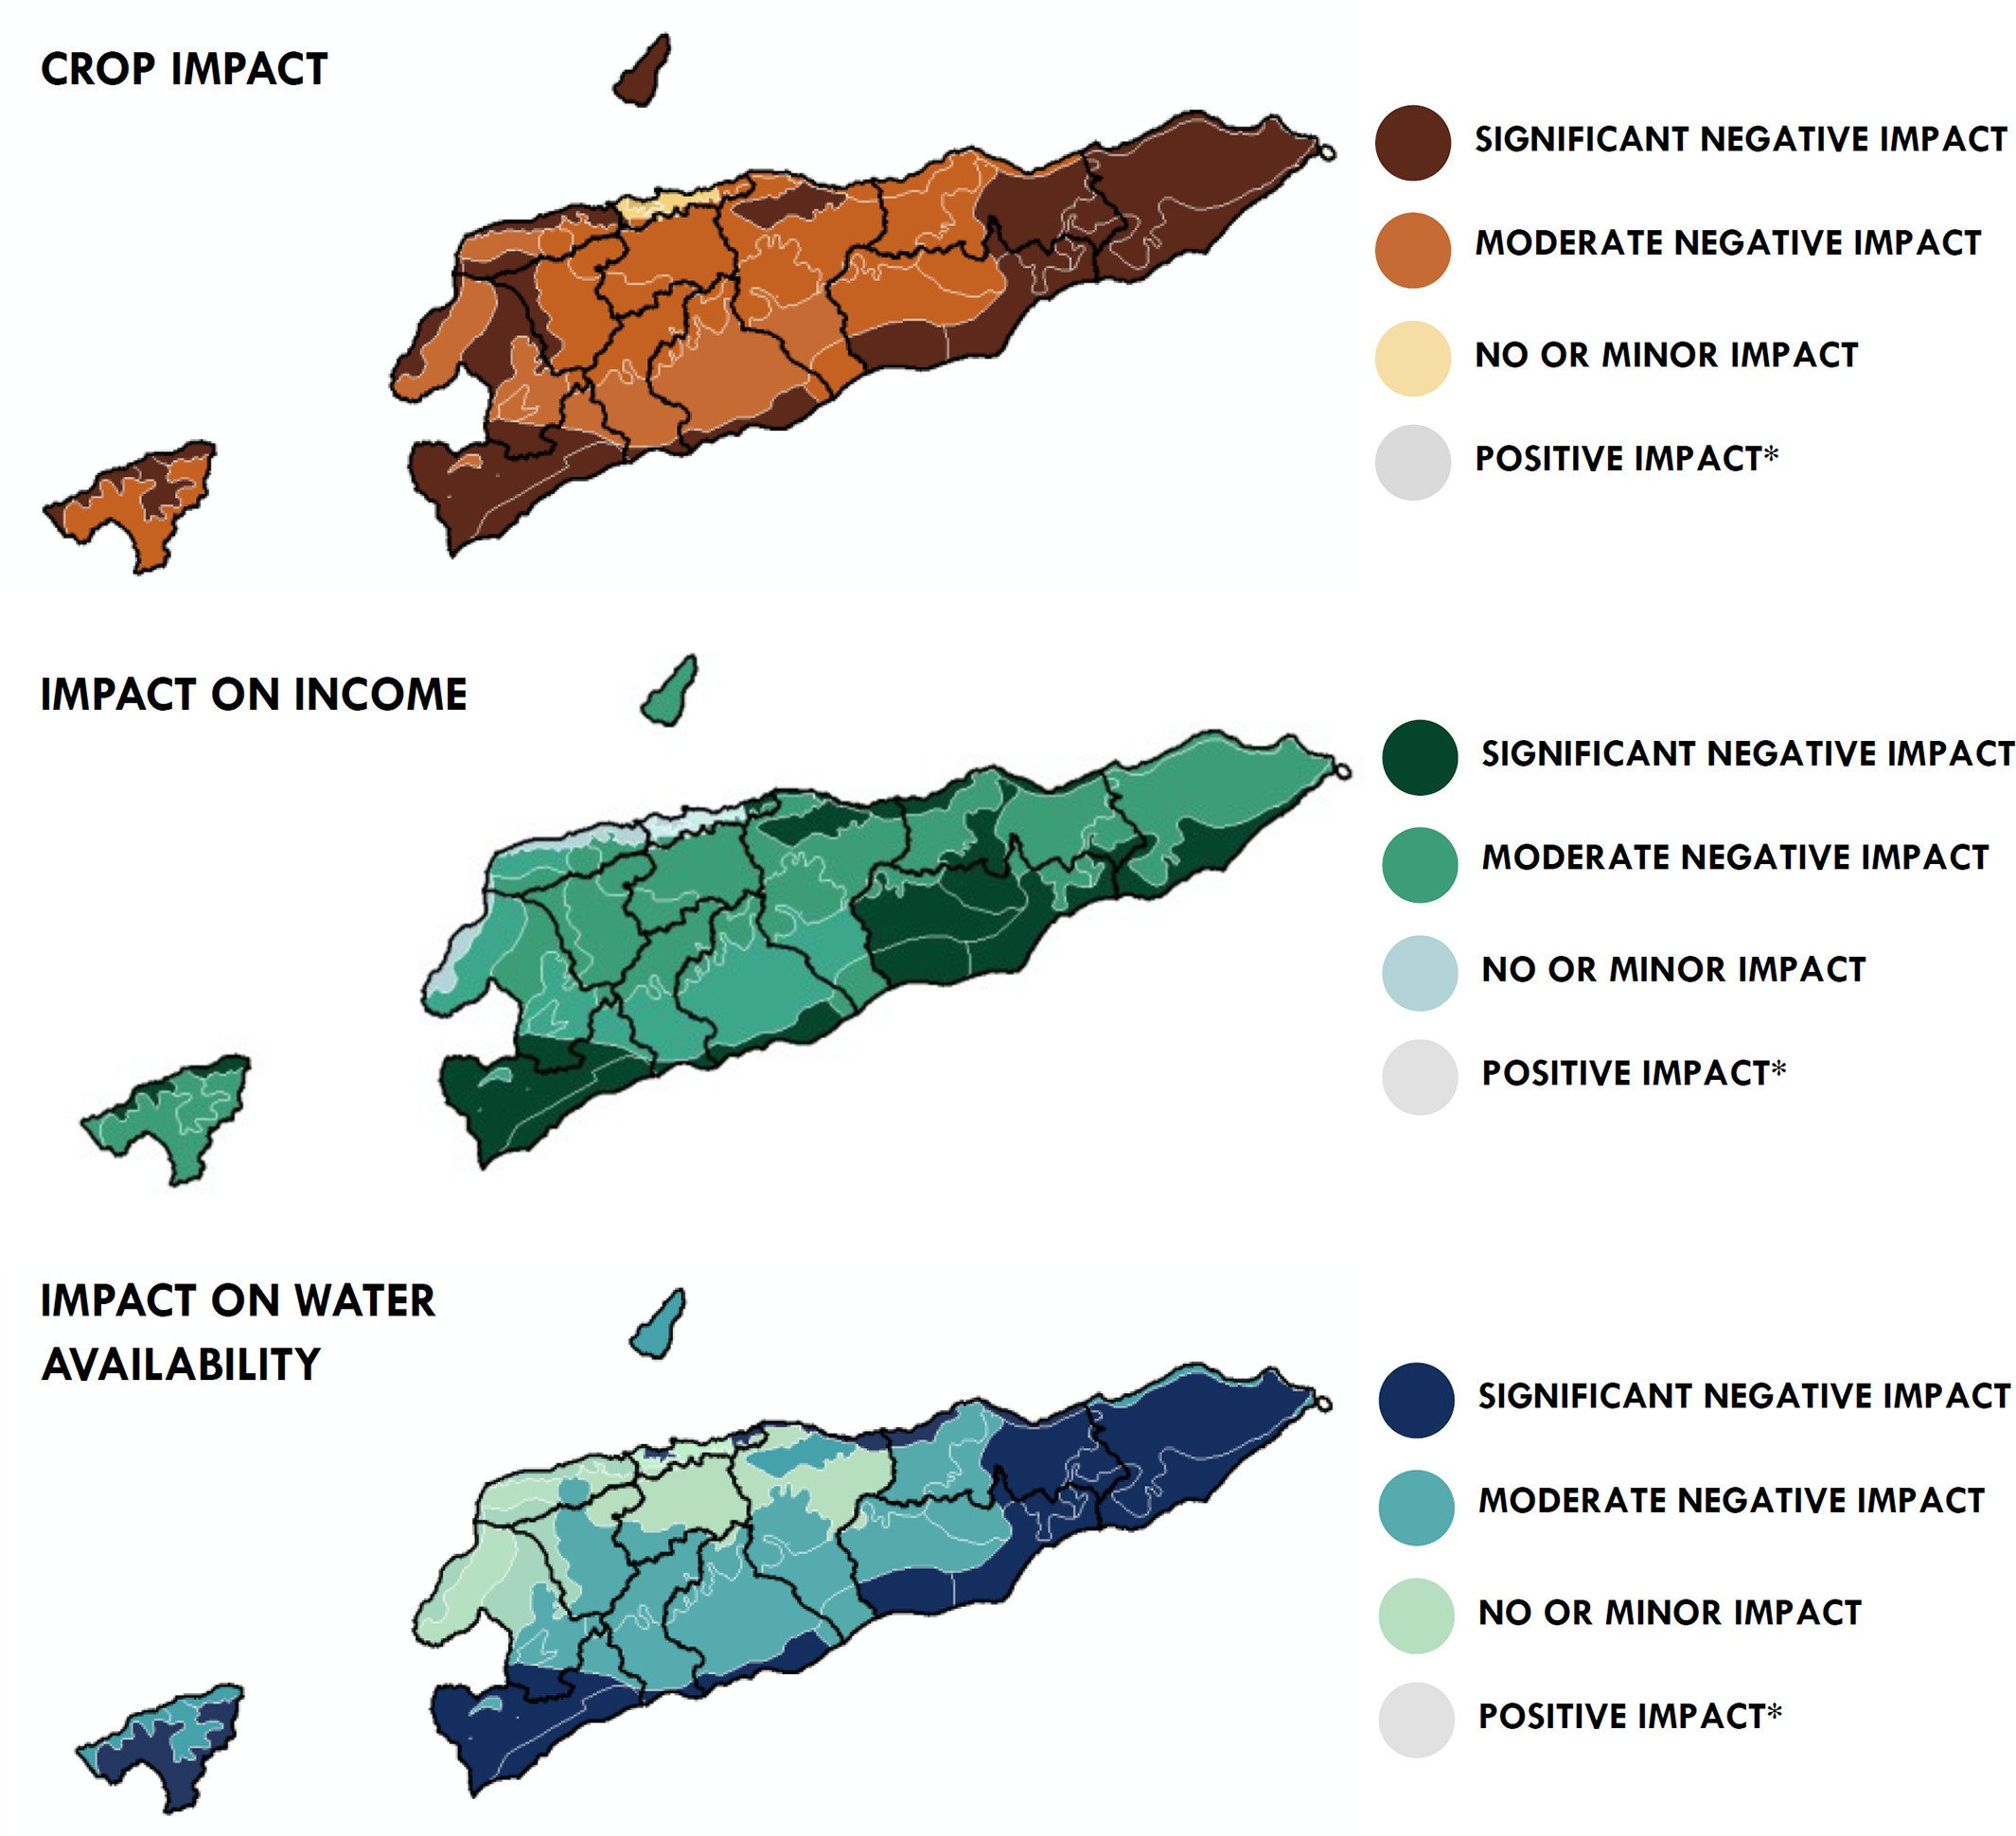 Impact of climate change on crops, water and income in Timor-Leste. Source: Bonis-Profumo et al 2019.